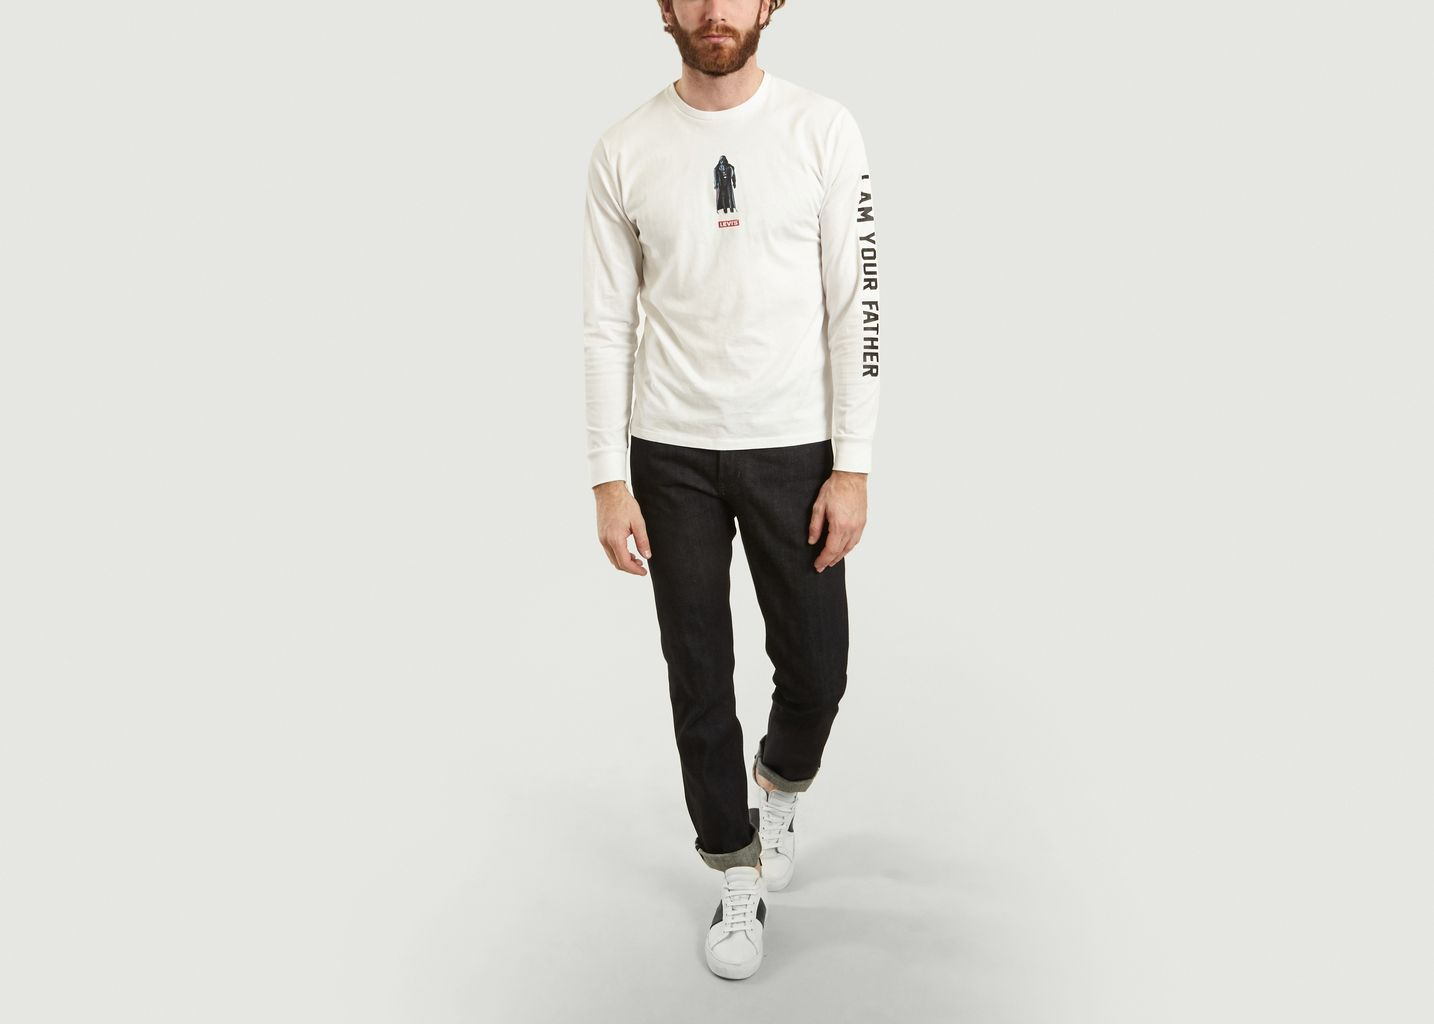 T-Shirt Manches Longues Levi's x Star Wars - Levi's Red Tab